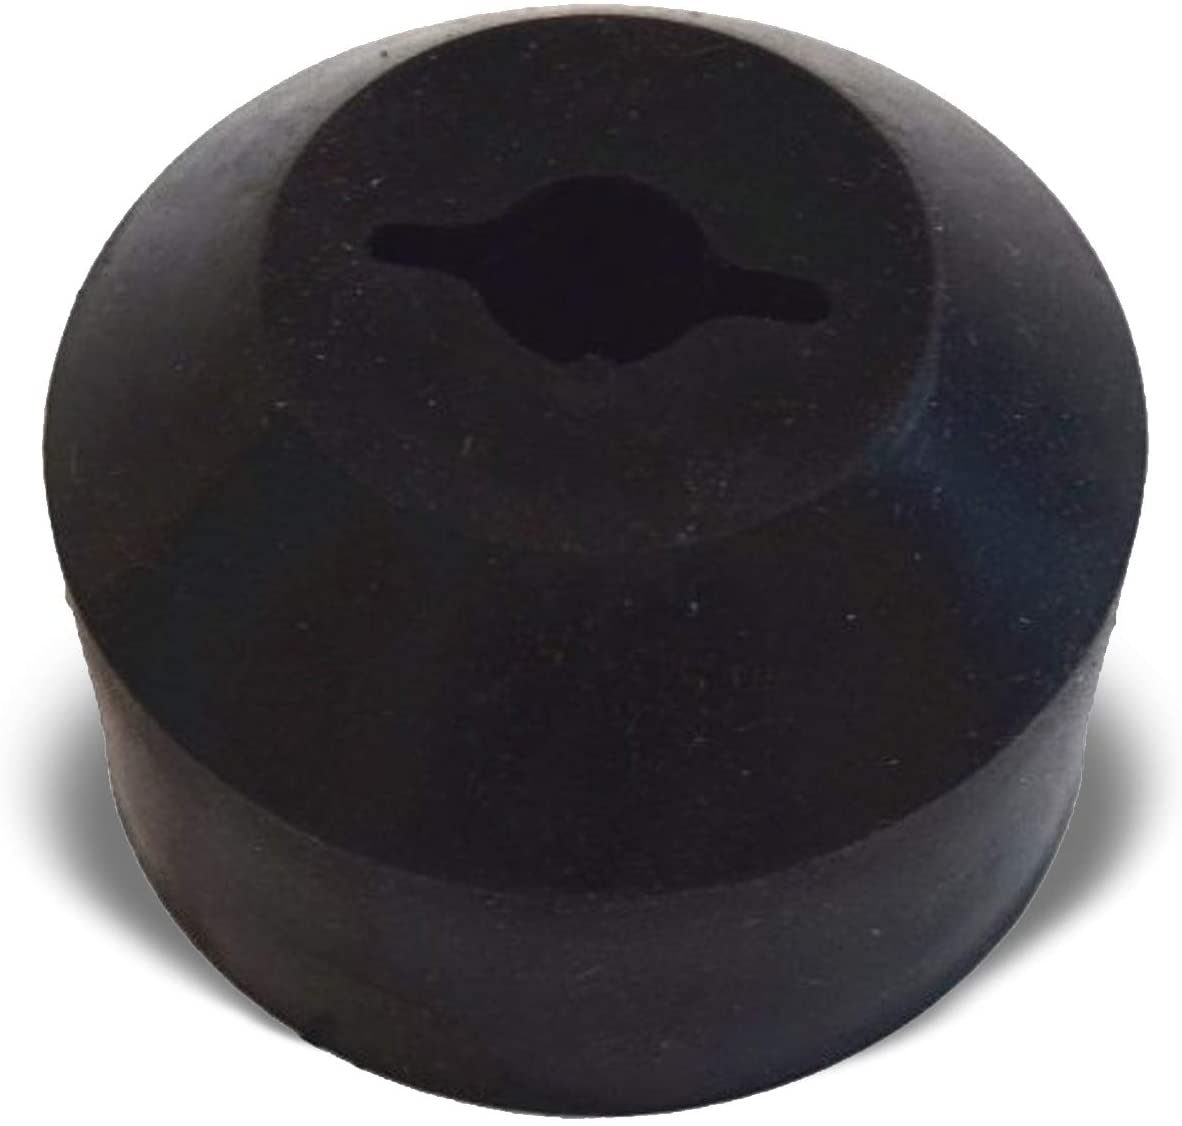 Rubber Winch Hook/Cable Stopper and Line Saver, for ATV/UTV/4x4